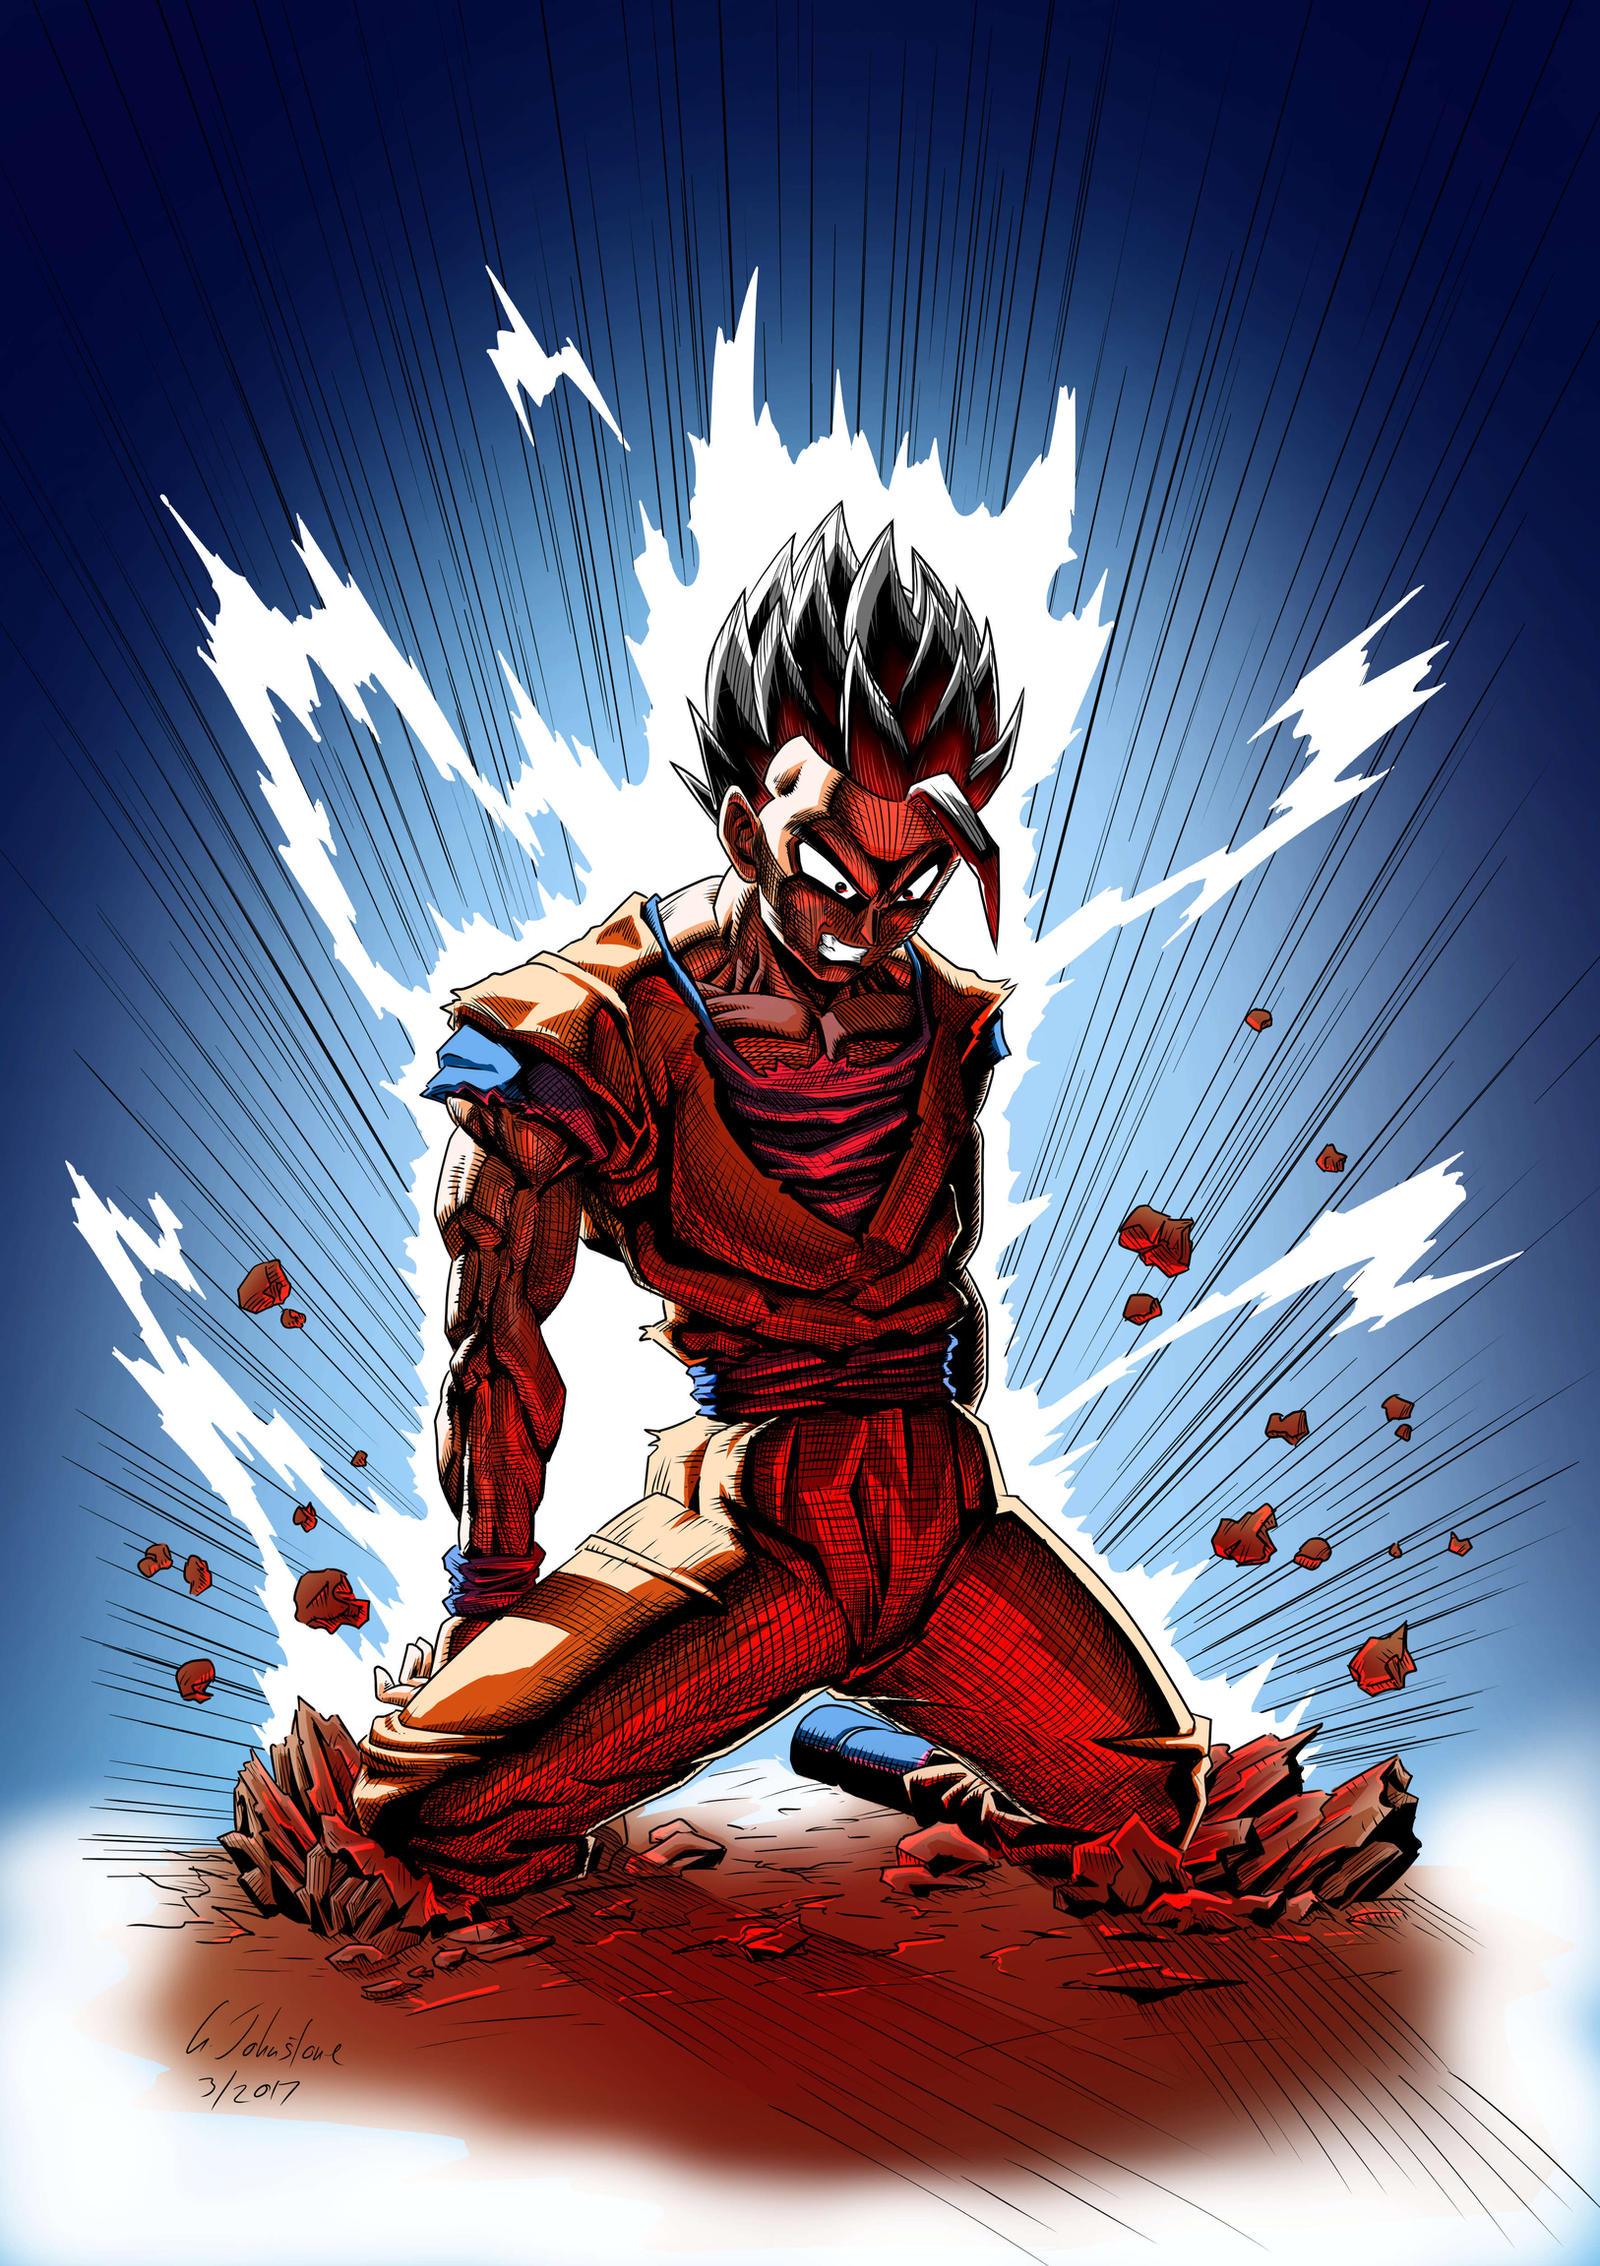 Gohan's Despair - Coloured by JustGeoffsArt